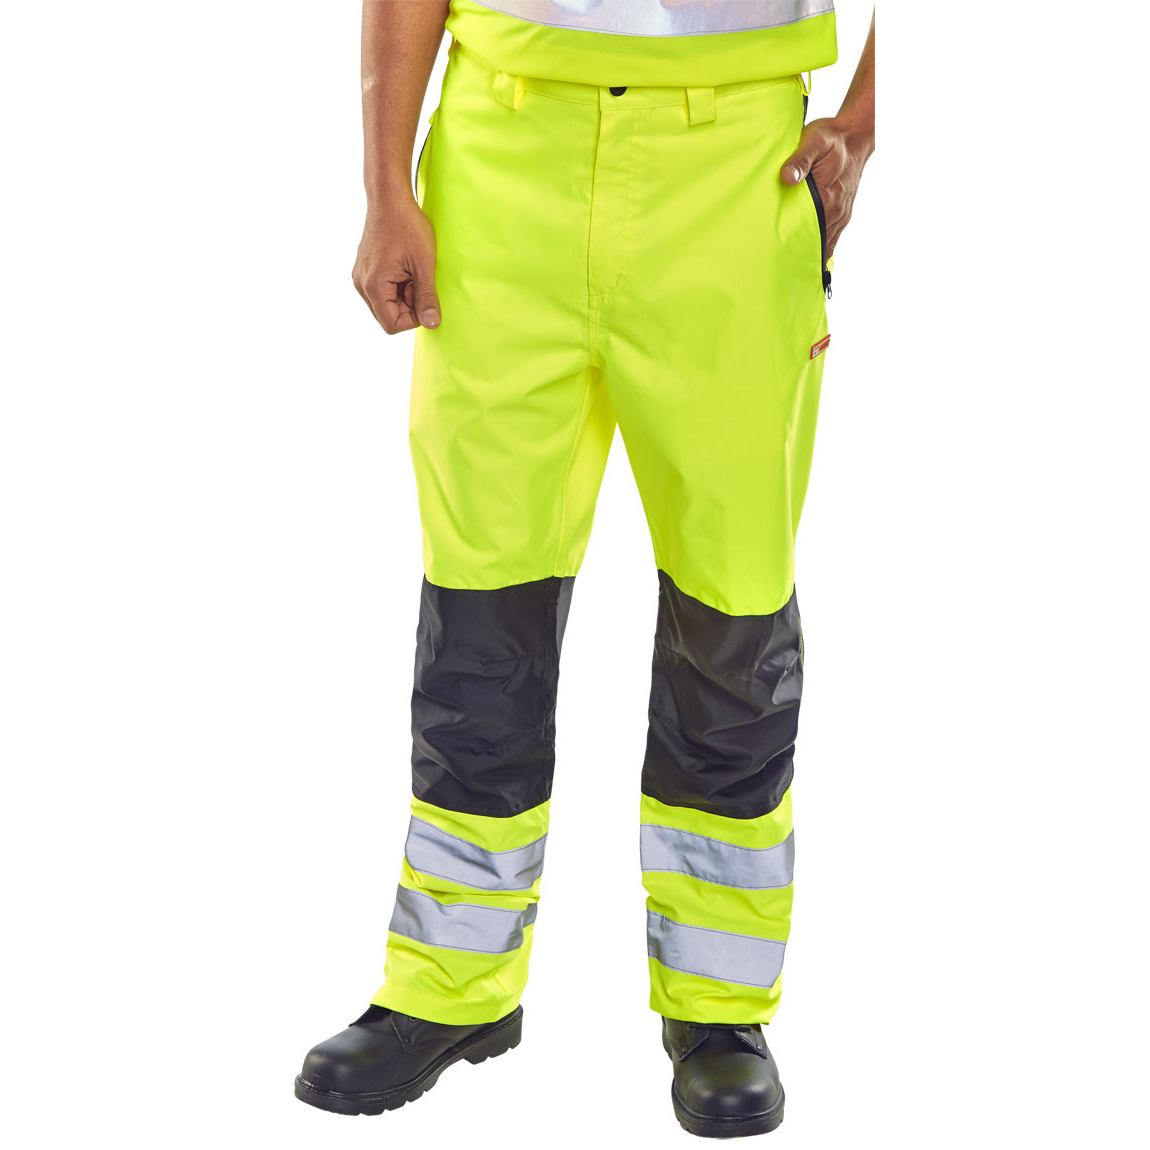 B-Seen Contrast Trousers Hi-Vis Waterproof XL Saturn Yellow Ref BD85SYXL *Up to 3 Day Leadtime*